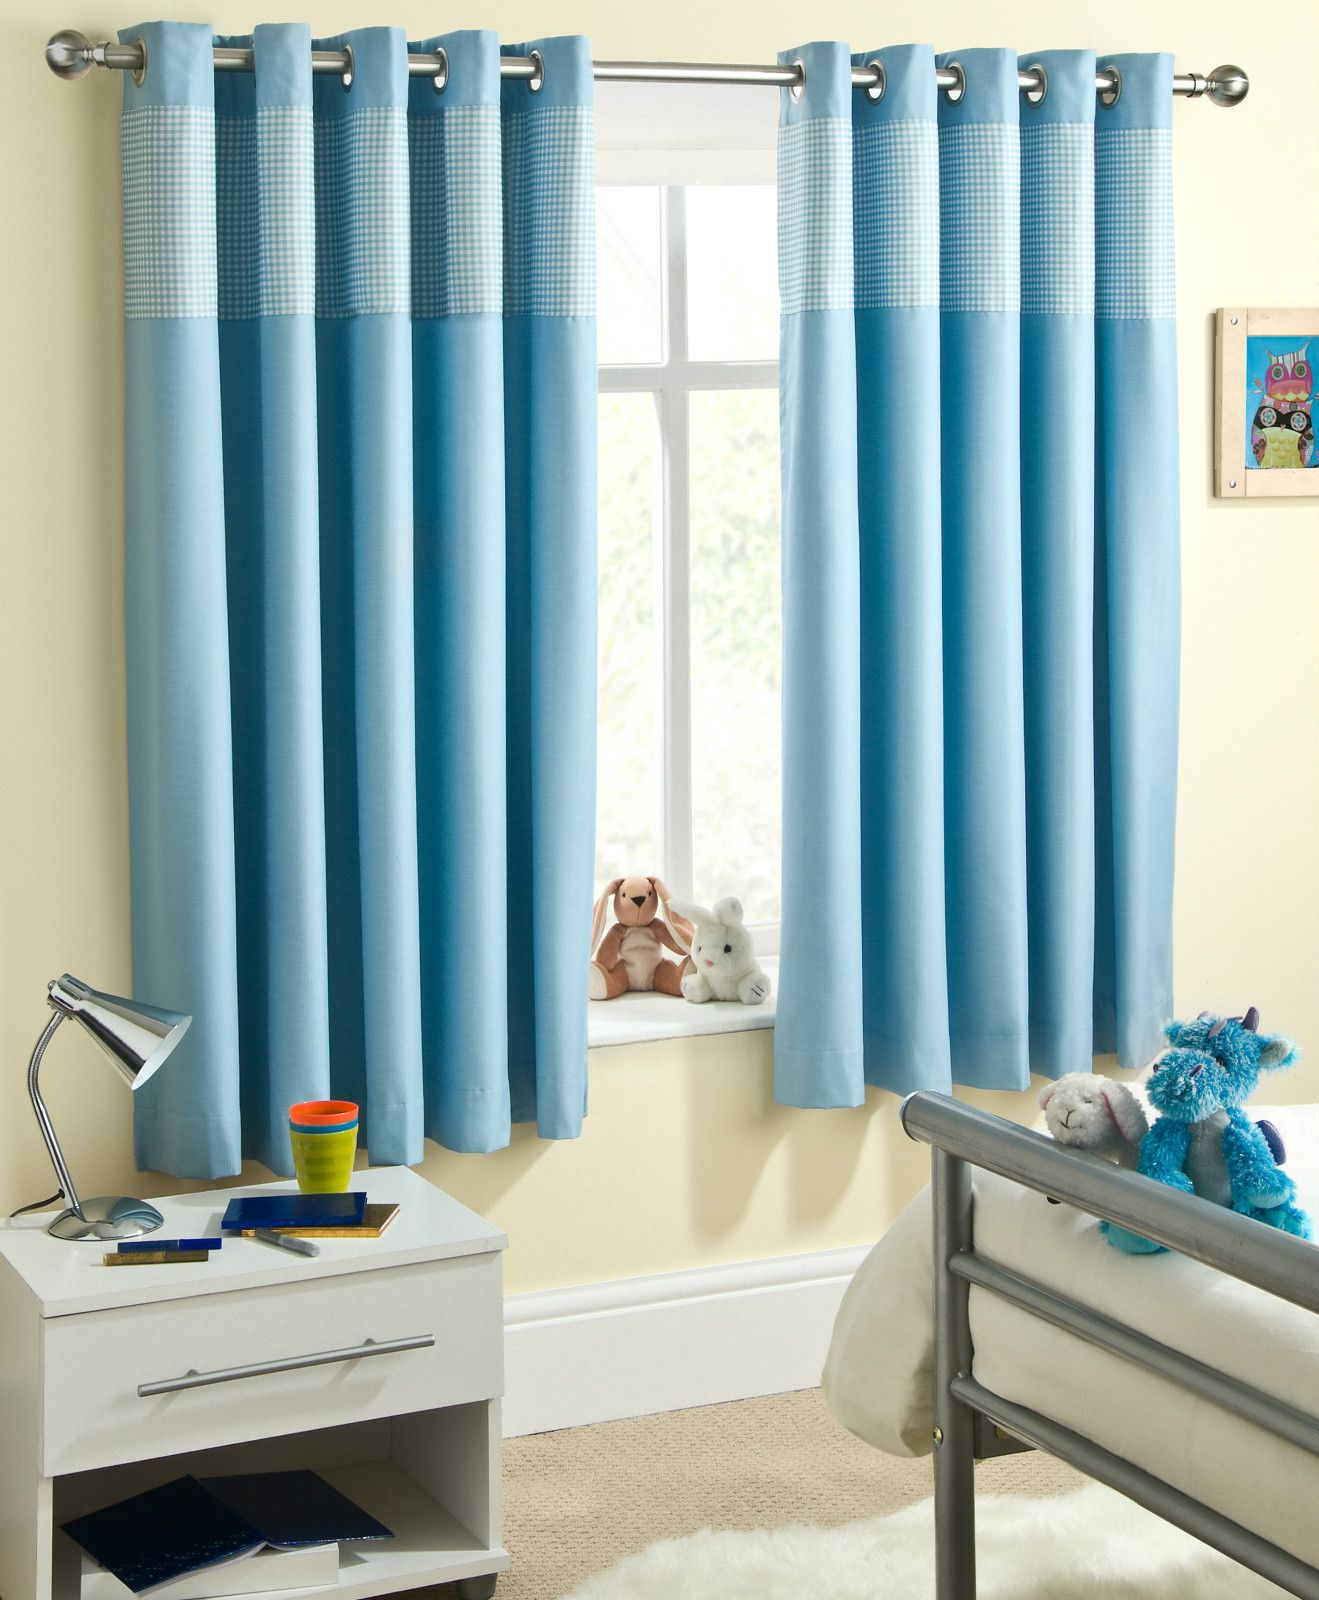 Boys Nursery Curtains Baby Nursery Curtains Just An Image I Like These Baby